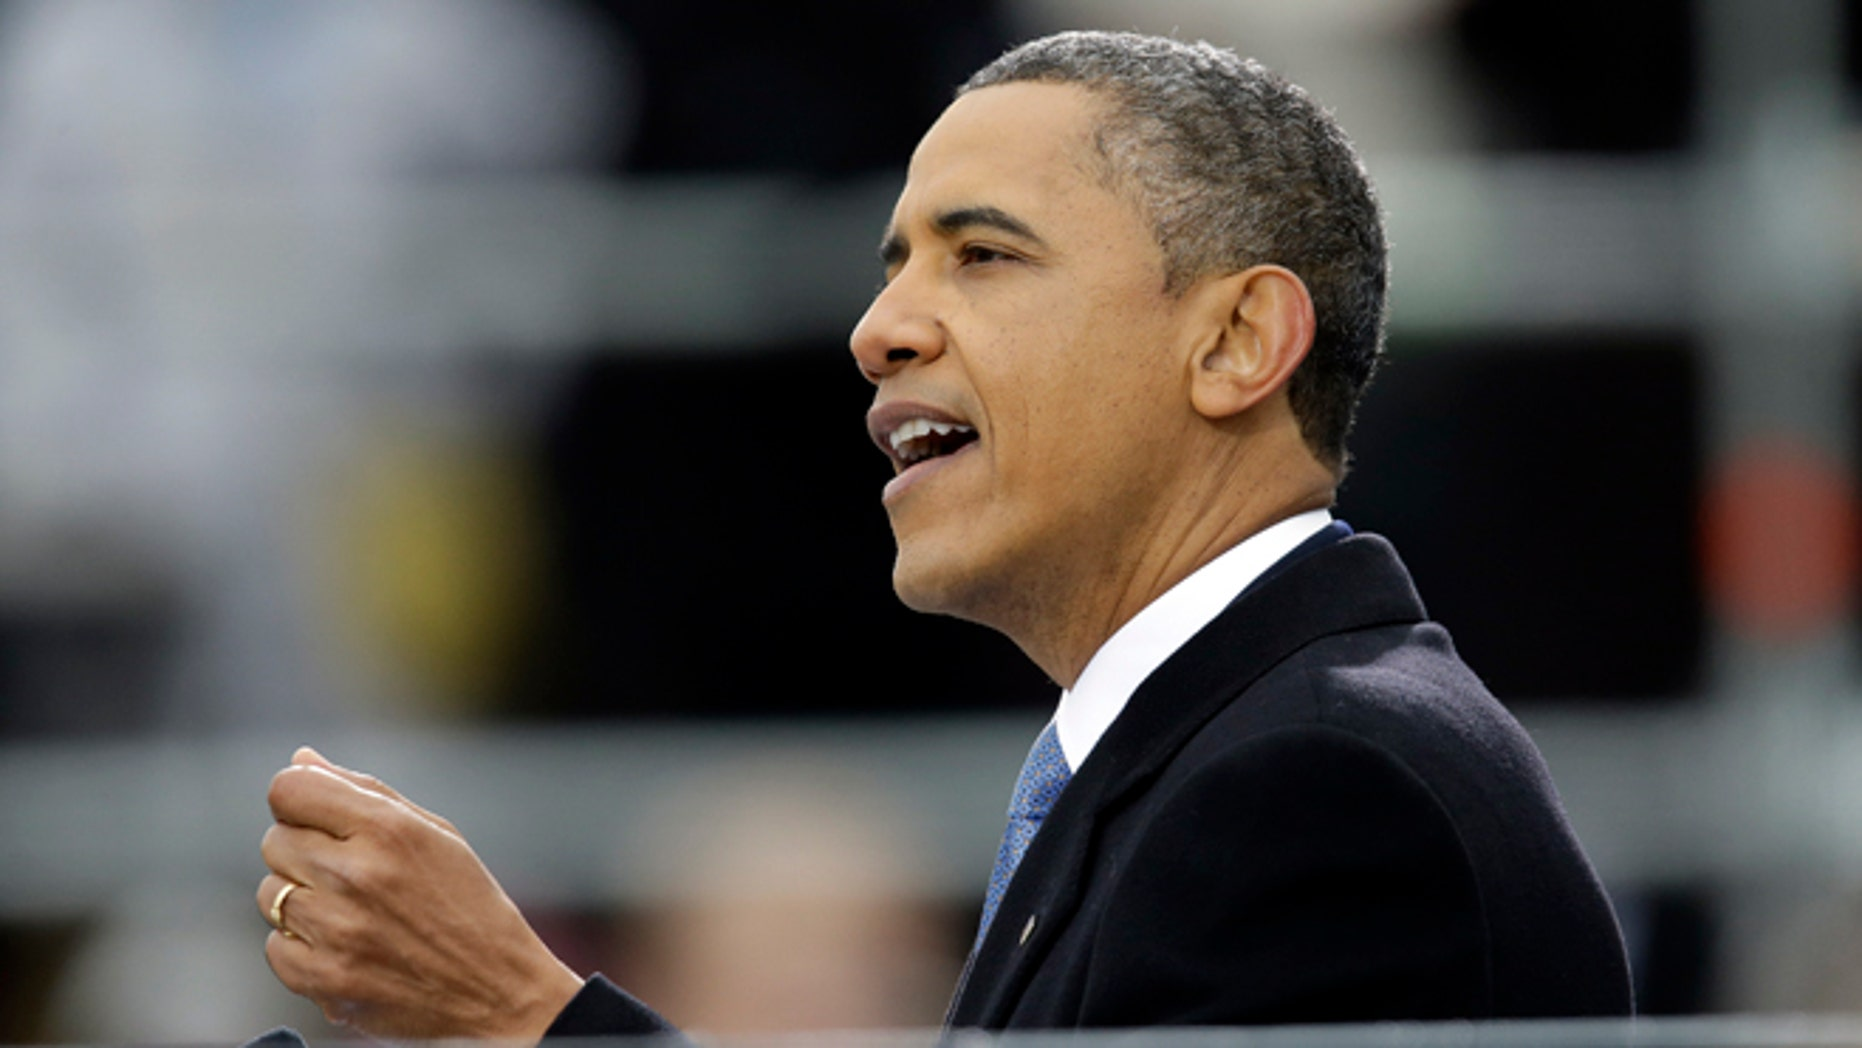 FILE: Jan. 21, 2013: President Obama starts in second term at the ceremonial swearing-in at the U.S. Capitol in Washington, D.C.